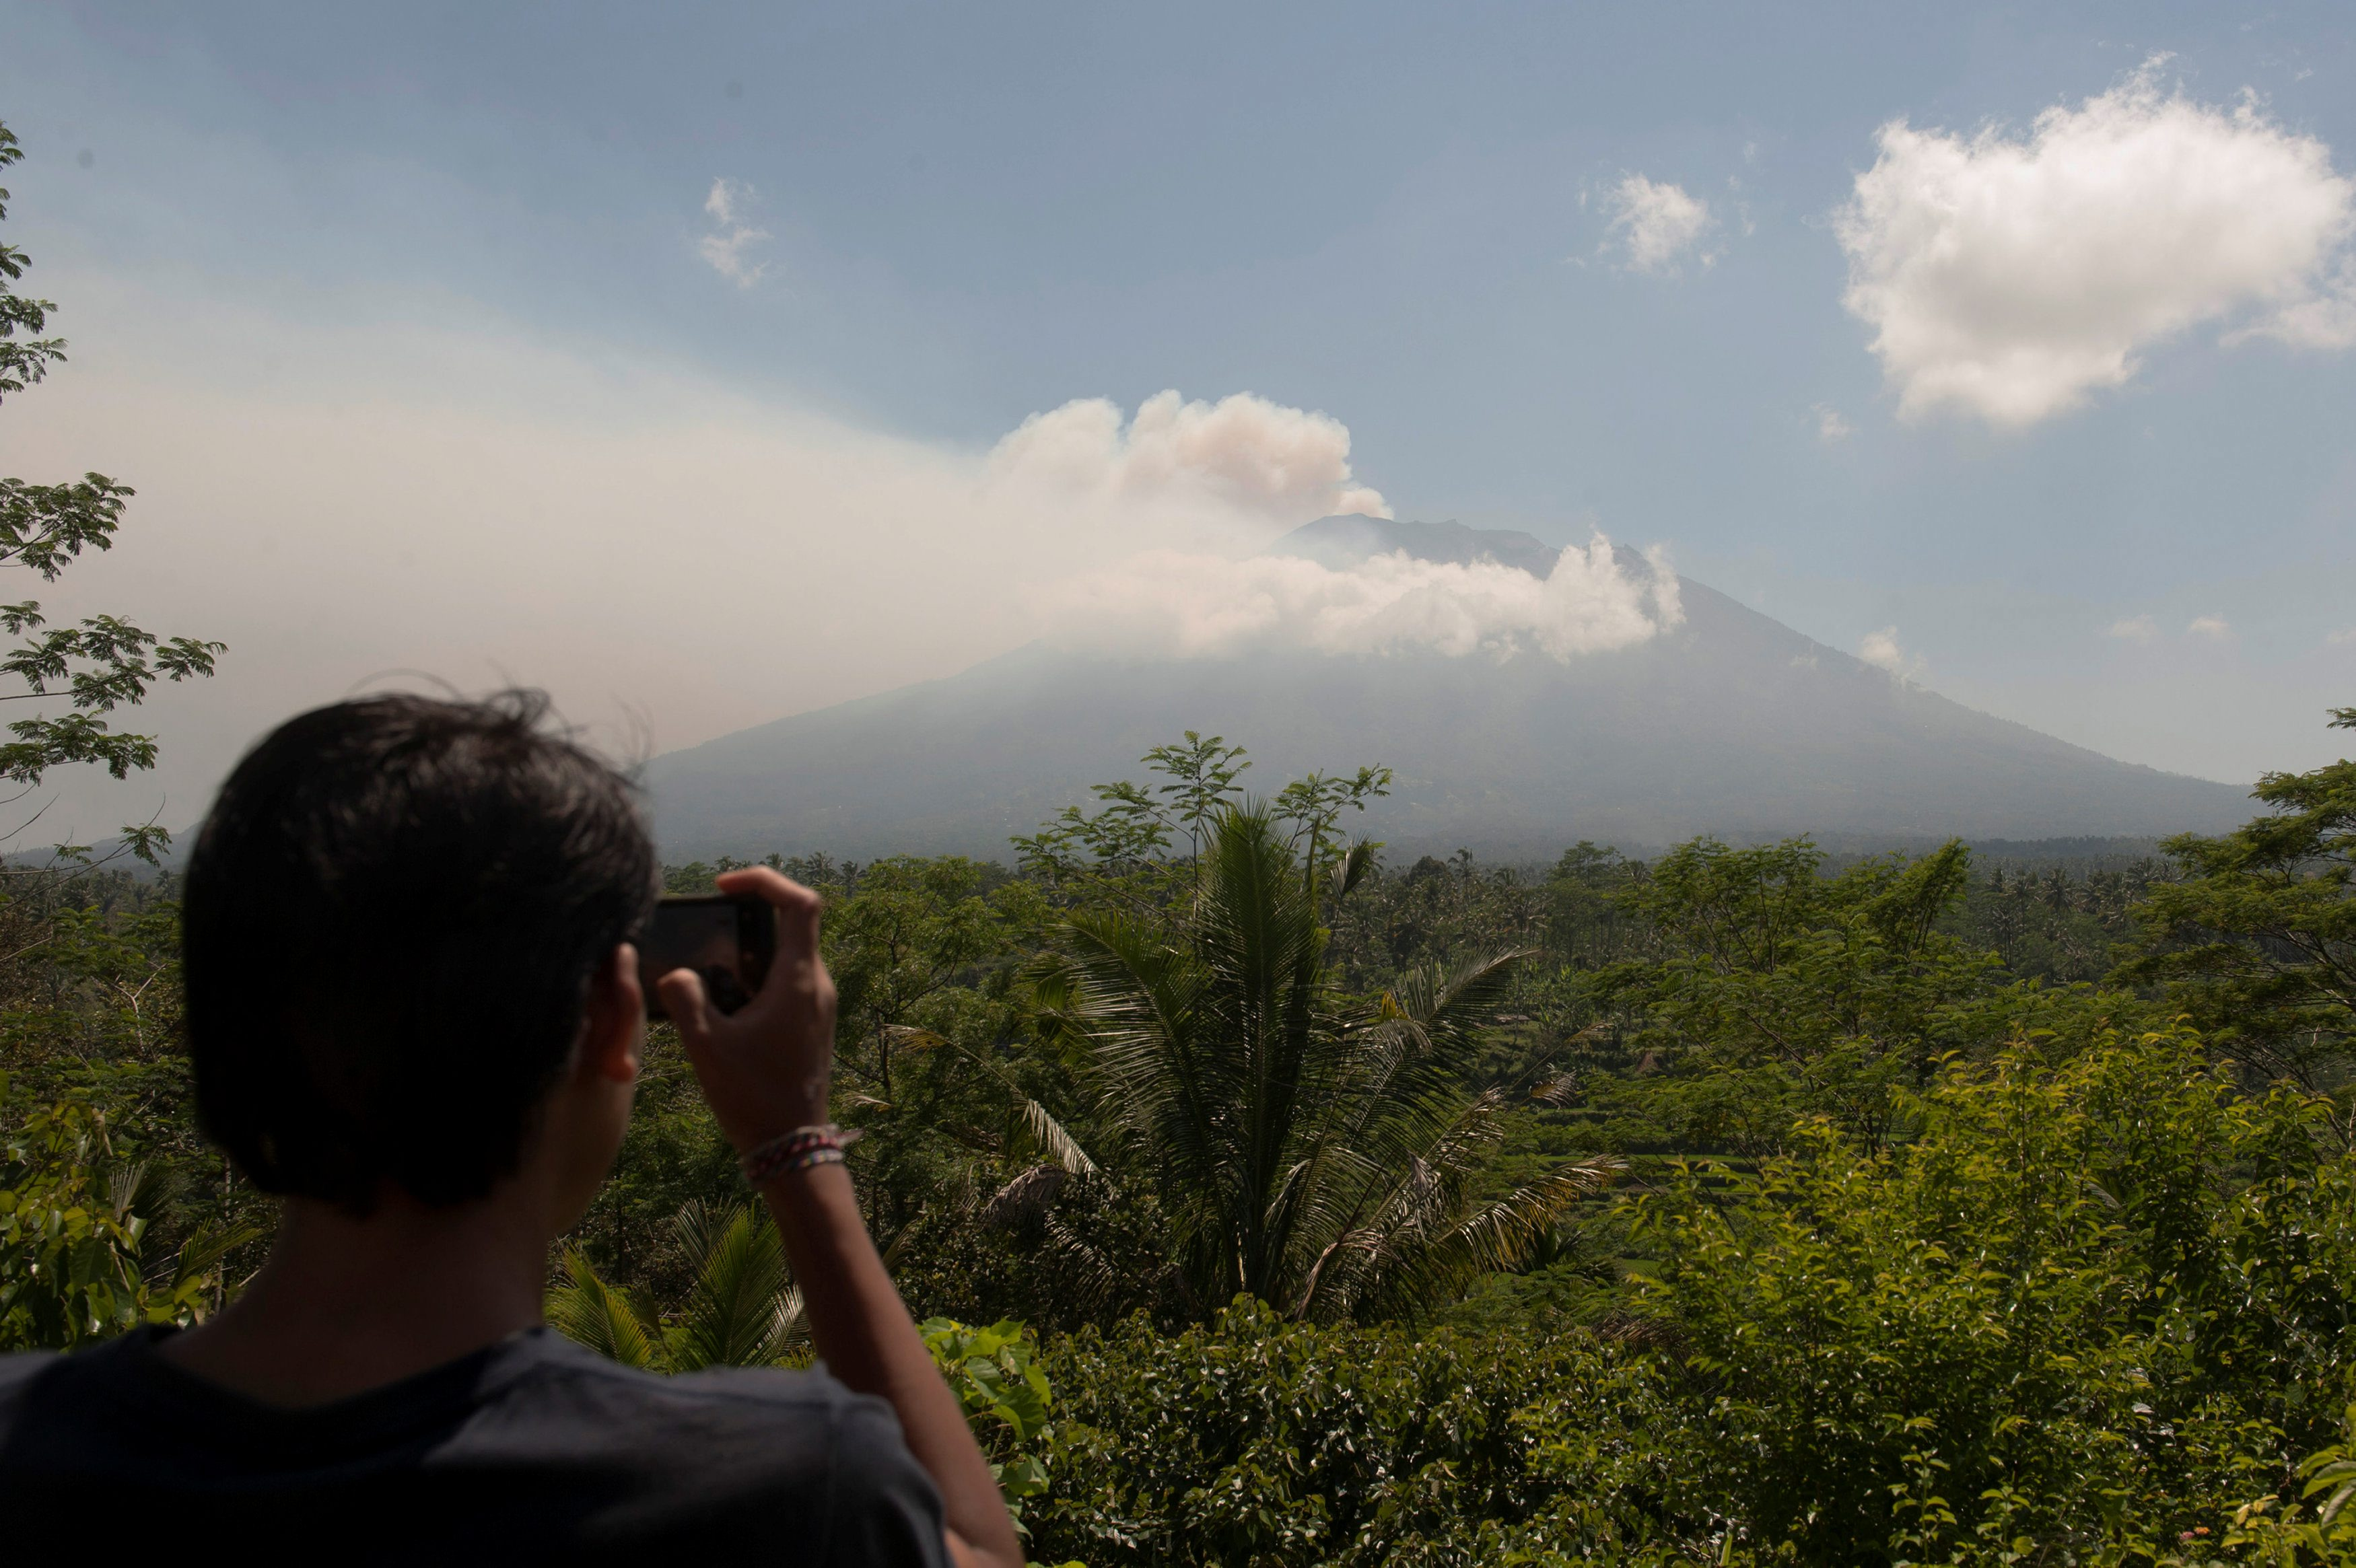 A local resident takes a picture of Mount Agung, an active volcano that authorities say is showing increased activity, from a monitoring station in Rendang Village, Karangasem on the resort island of Bali, Indonesia September 19, 2017 in this photo taken by Antara Foto. Antara Foto/Nyoman Budhiana via REUTERS ATTENTION EDITORS - THIS IMAGE WAS PROVIDED BY A THIRD PARTY. MANDATORY CREDIT. INDONESIA OUT. NO COMMERCIAL OR EDITORIAL SALES IN INDONESIA